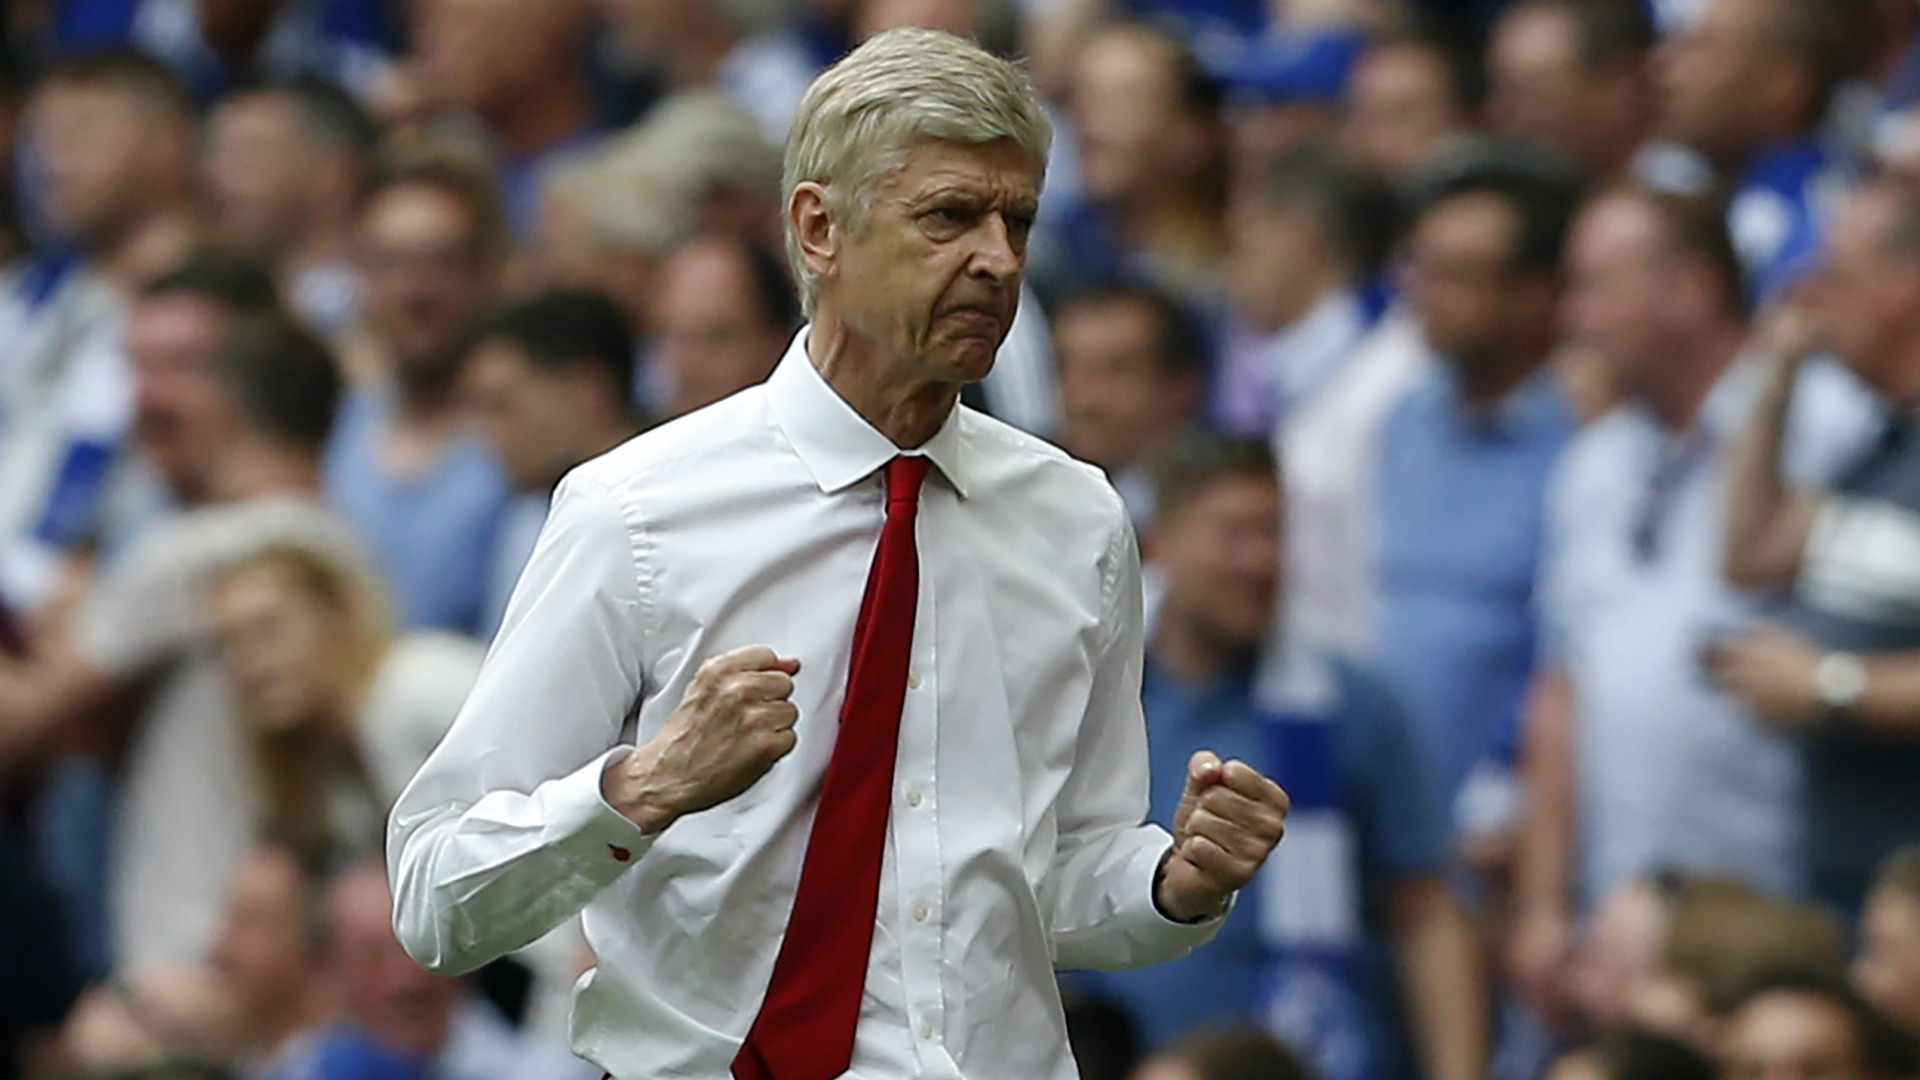 Two more years! Arsene Wenger's contract extension